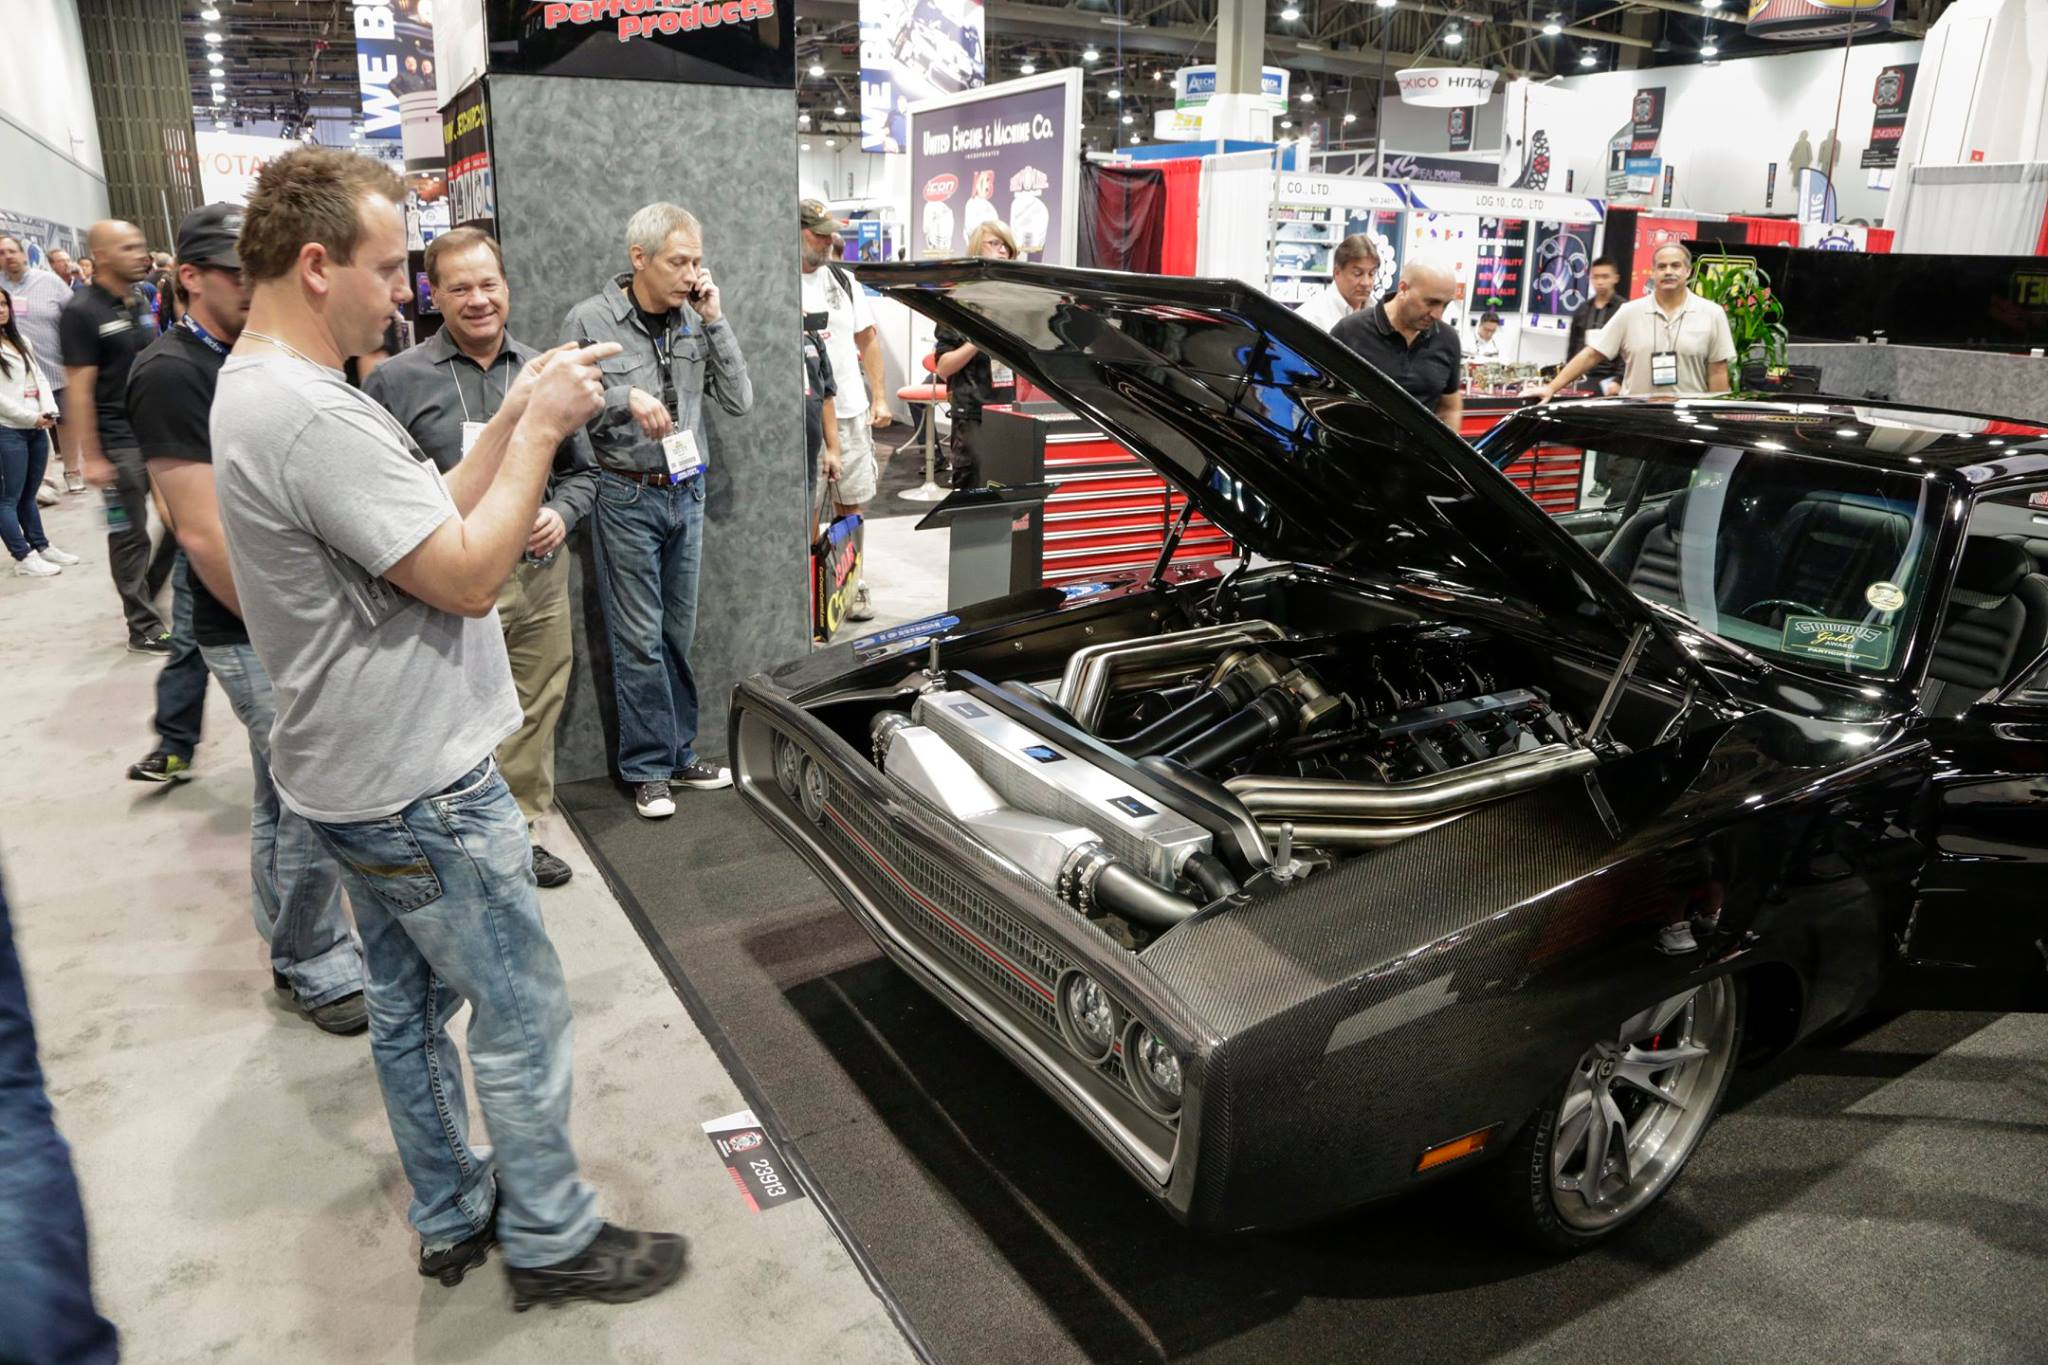 Carbon Fiber 1970 Dodge Charger with Immaculate Mercury Racing Engine Debuts at SEMA 2015 ...